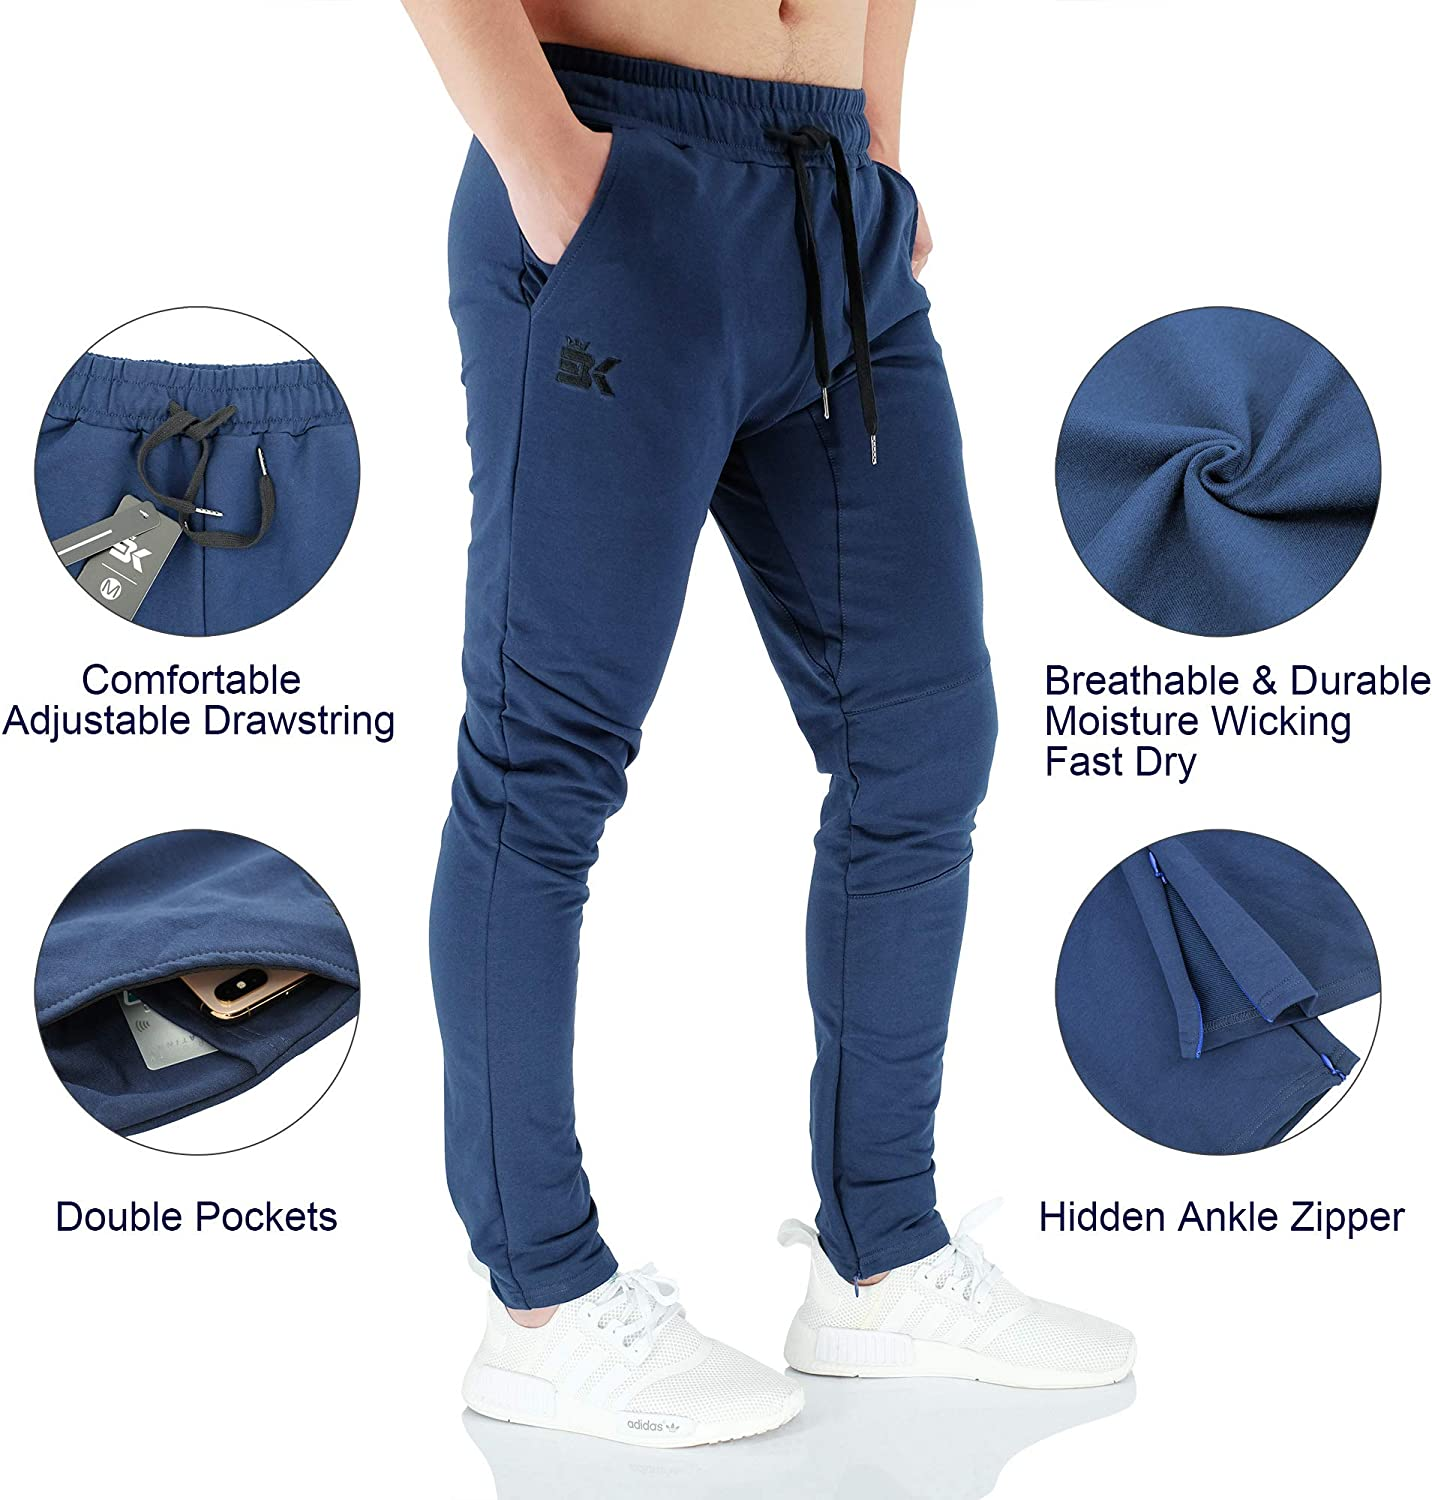 BROKIG Mens Gym Joggers Sweatpants, Causal Slim Fit Running Trousers Tracksuit Jogging Bottoms with Double Pockets Navy